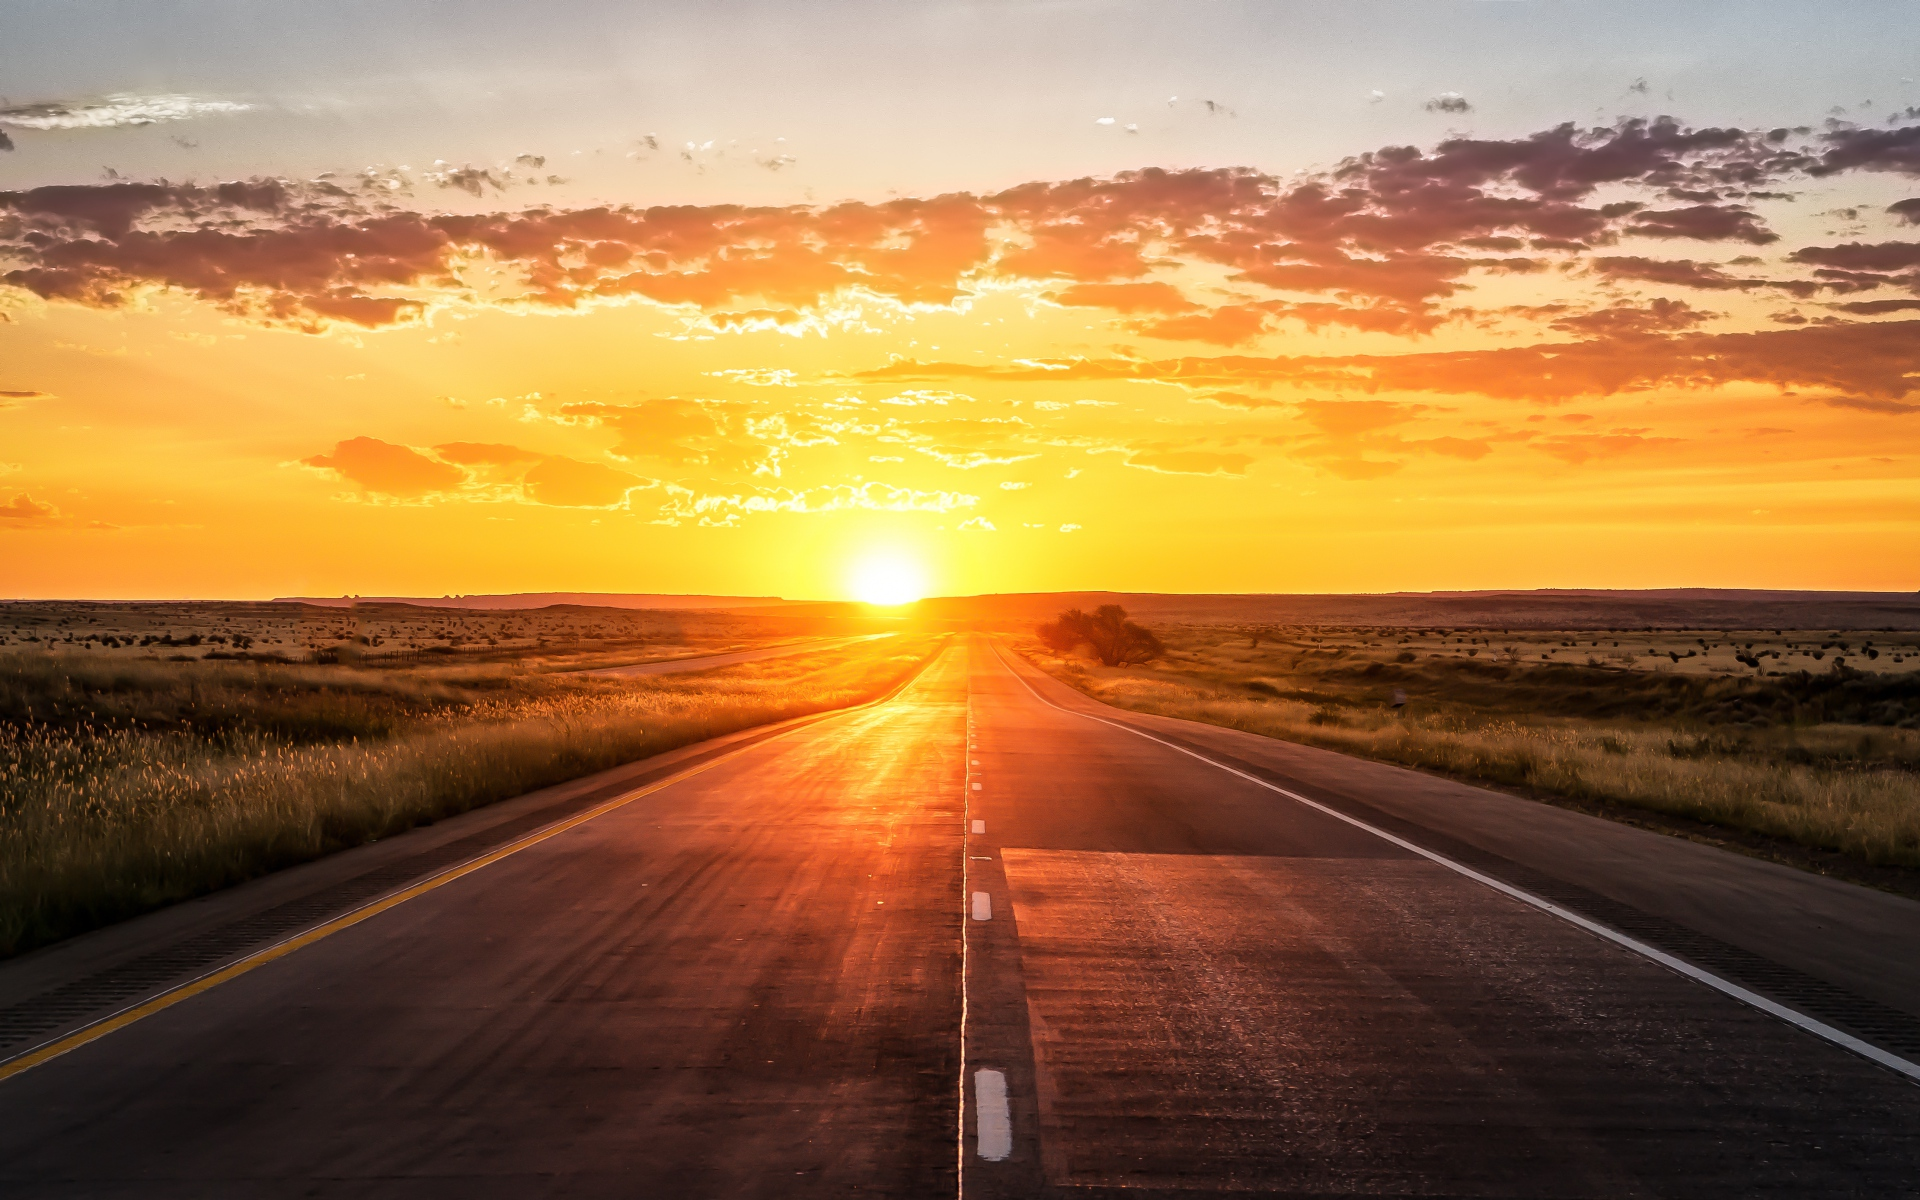 Road Sunset Wallpaper 30+ HD Sunset Wallpape...